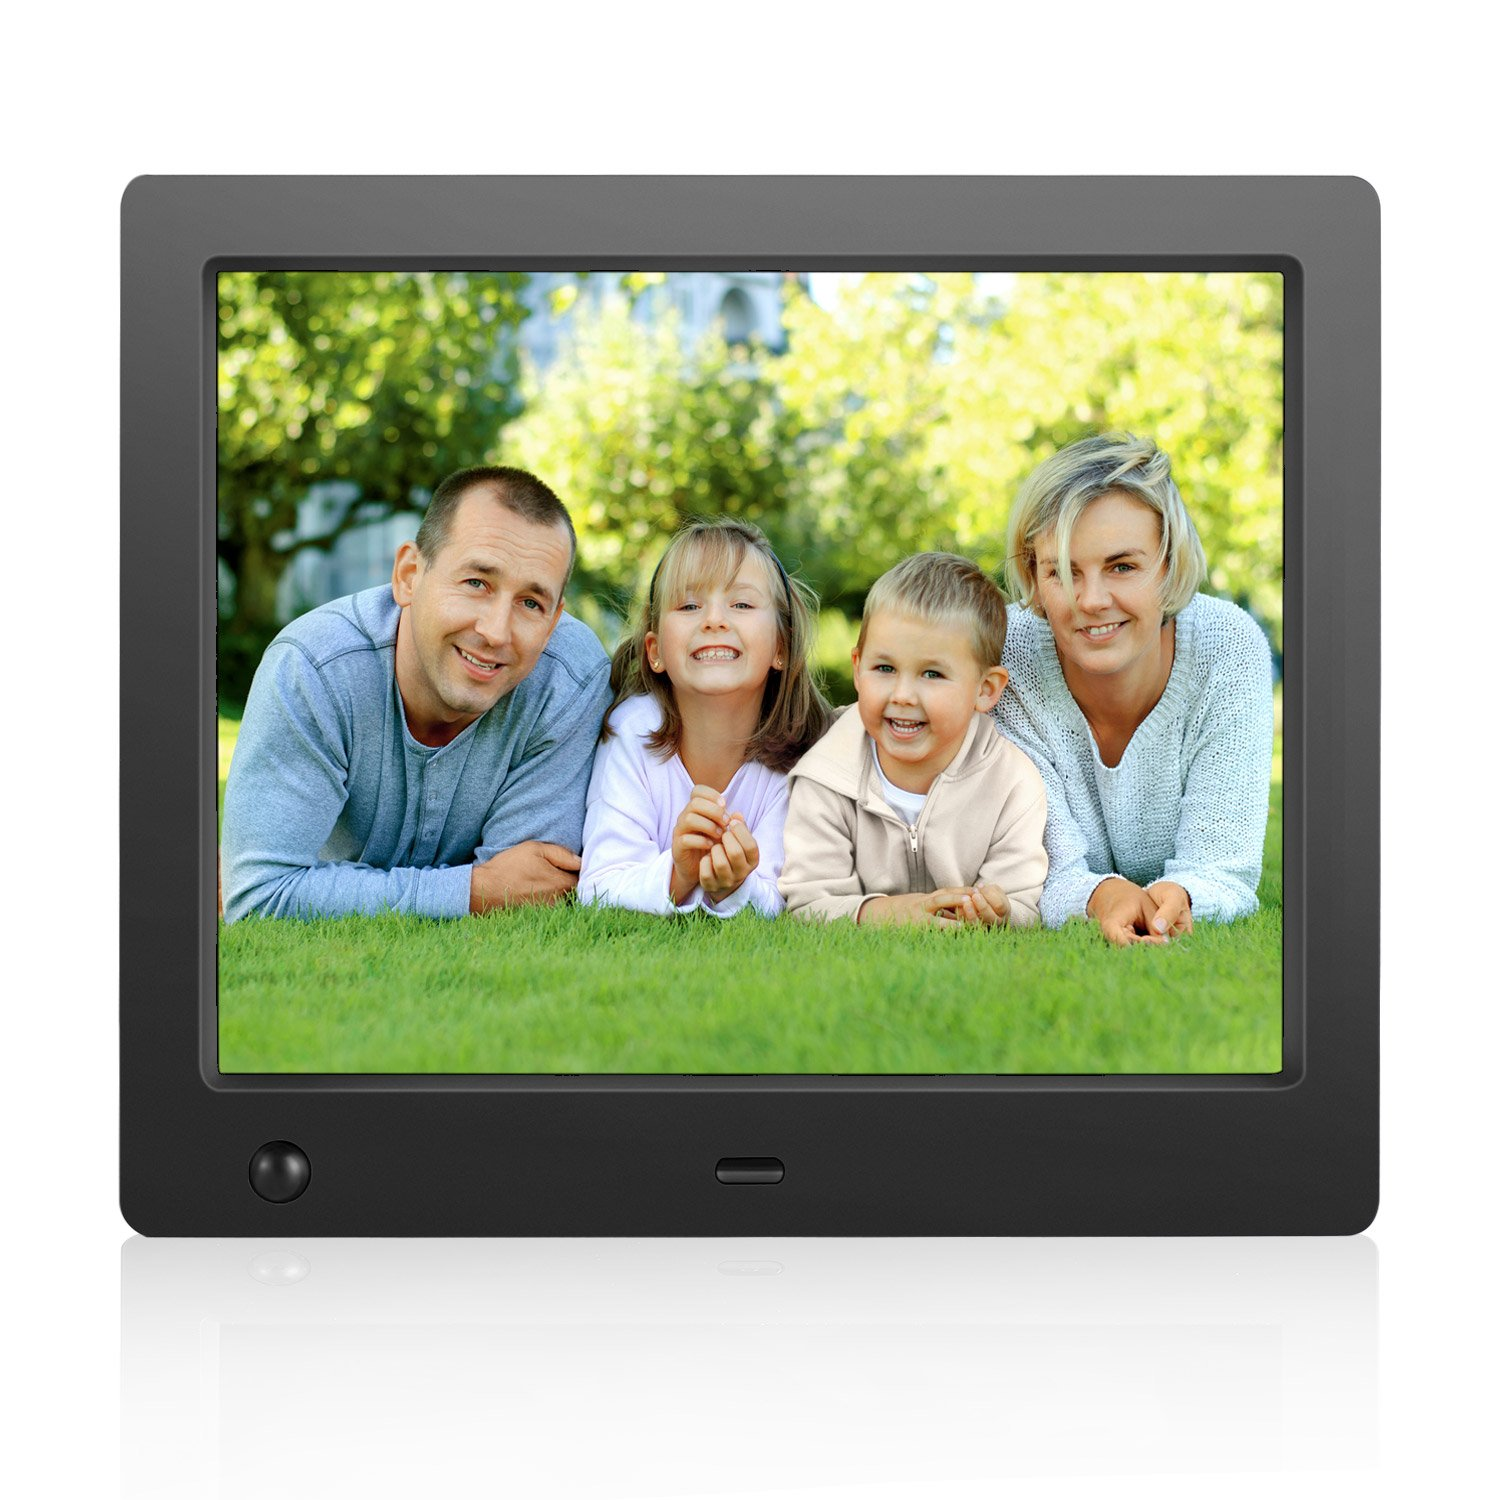 Digital Picture Frame 8 inch Electronic Digital Photo Frame IPS 4:3 1024x768 Display with Motion Sensor 1080P 720P Video Player Stereo/MP3/Calendar/Time …